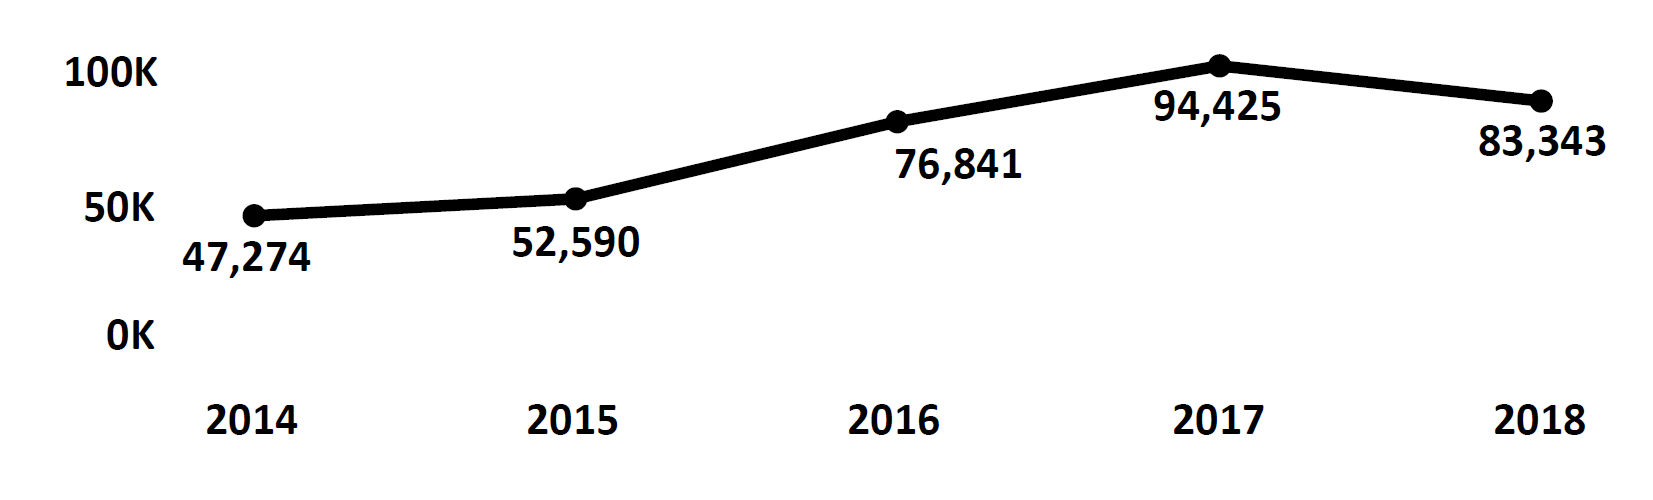 Graph of Do Not Call complaints recorded in Connecticut from fiscal year 2014 to fiscal year 2018. In 2014 there were 47,274 complaints filed, which increased each year to peak at 94,425 in 2017. In 2018 there were 83,343 complaints filed, fewer than 2017.